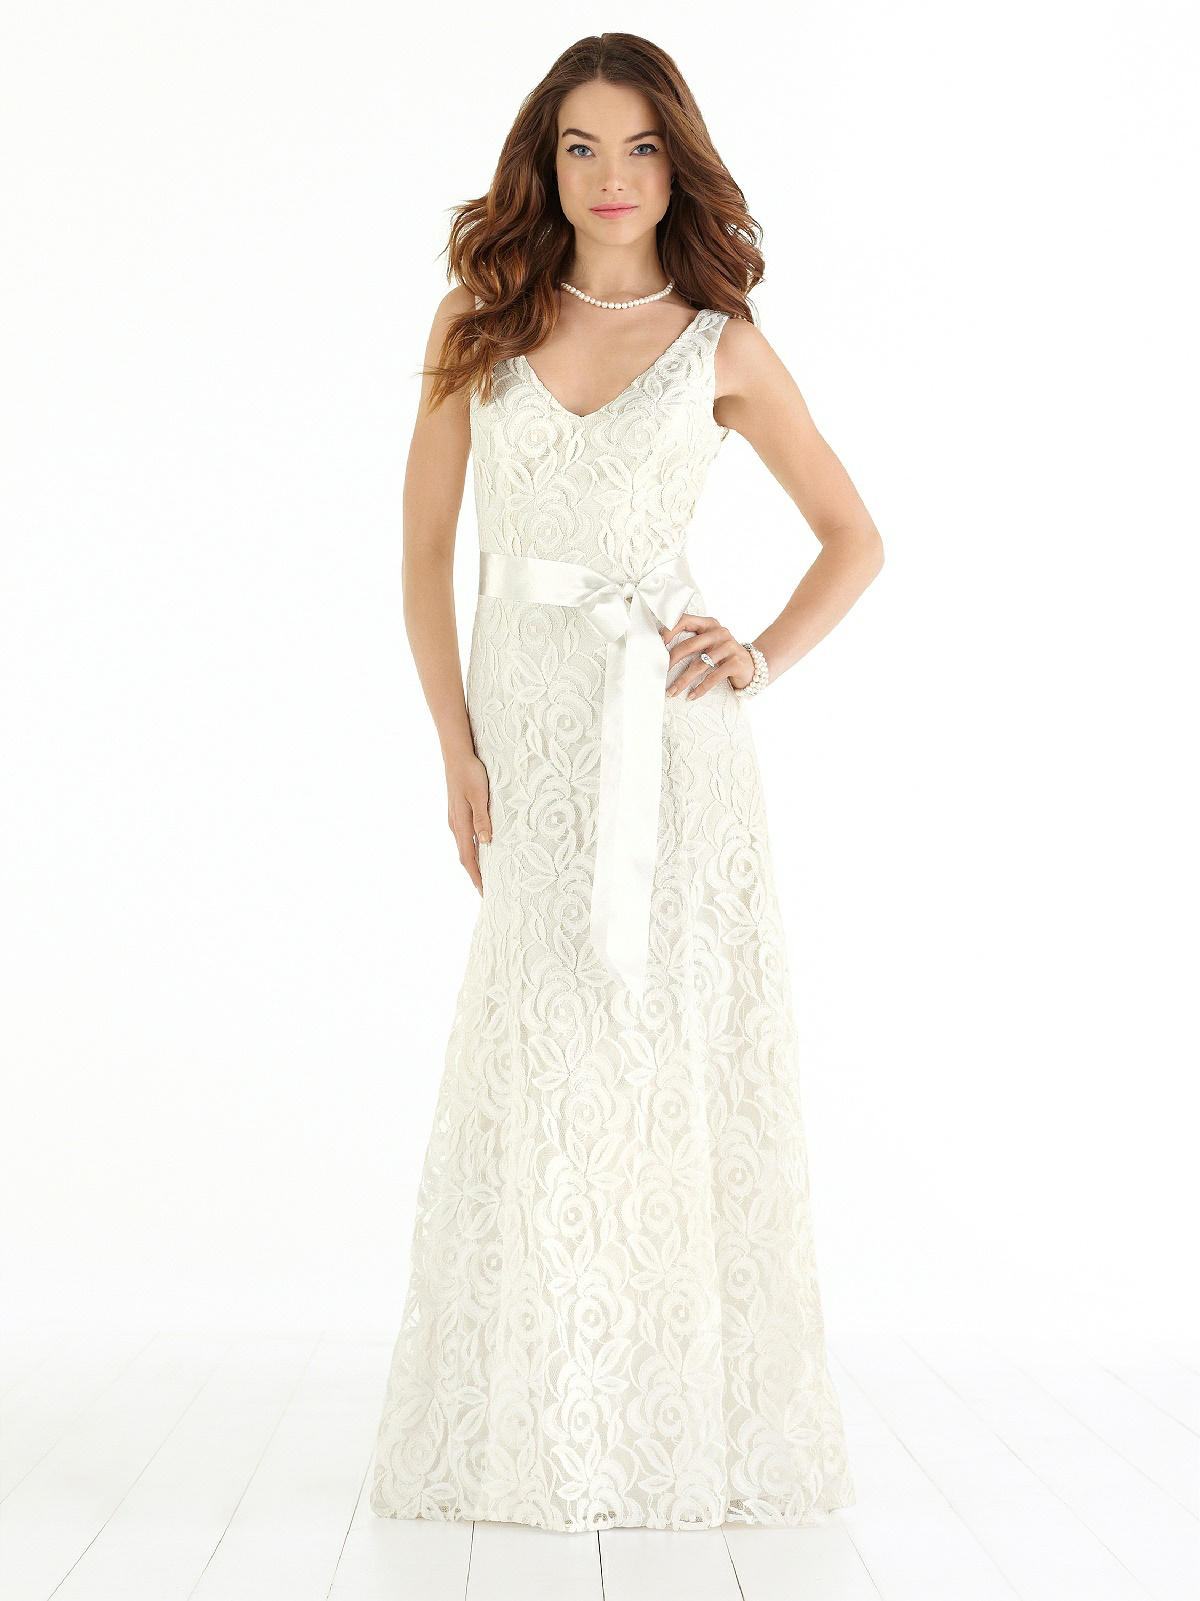 long lace wedding dress with v neckline.